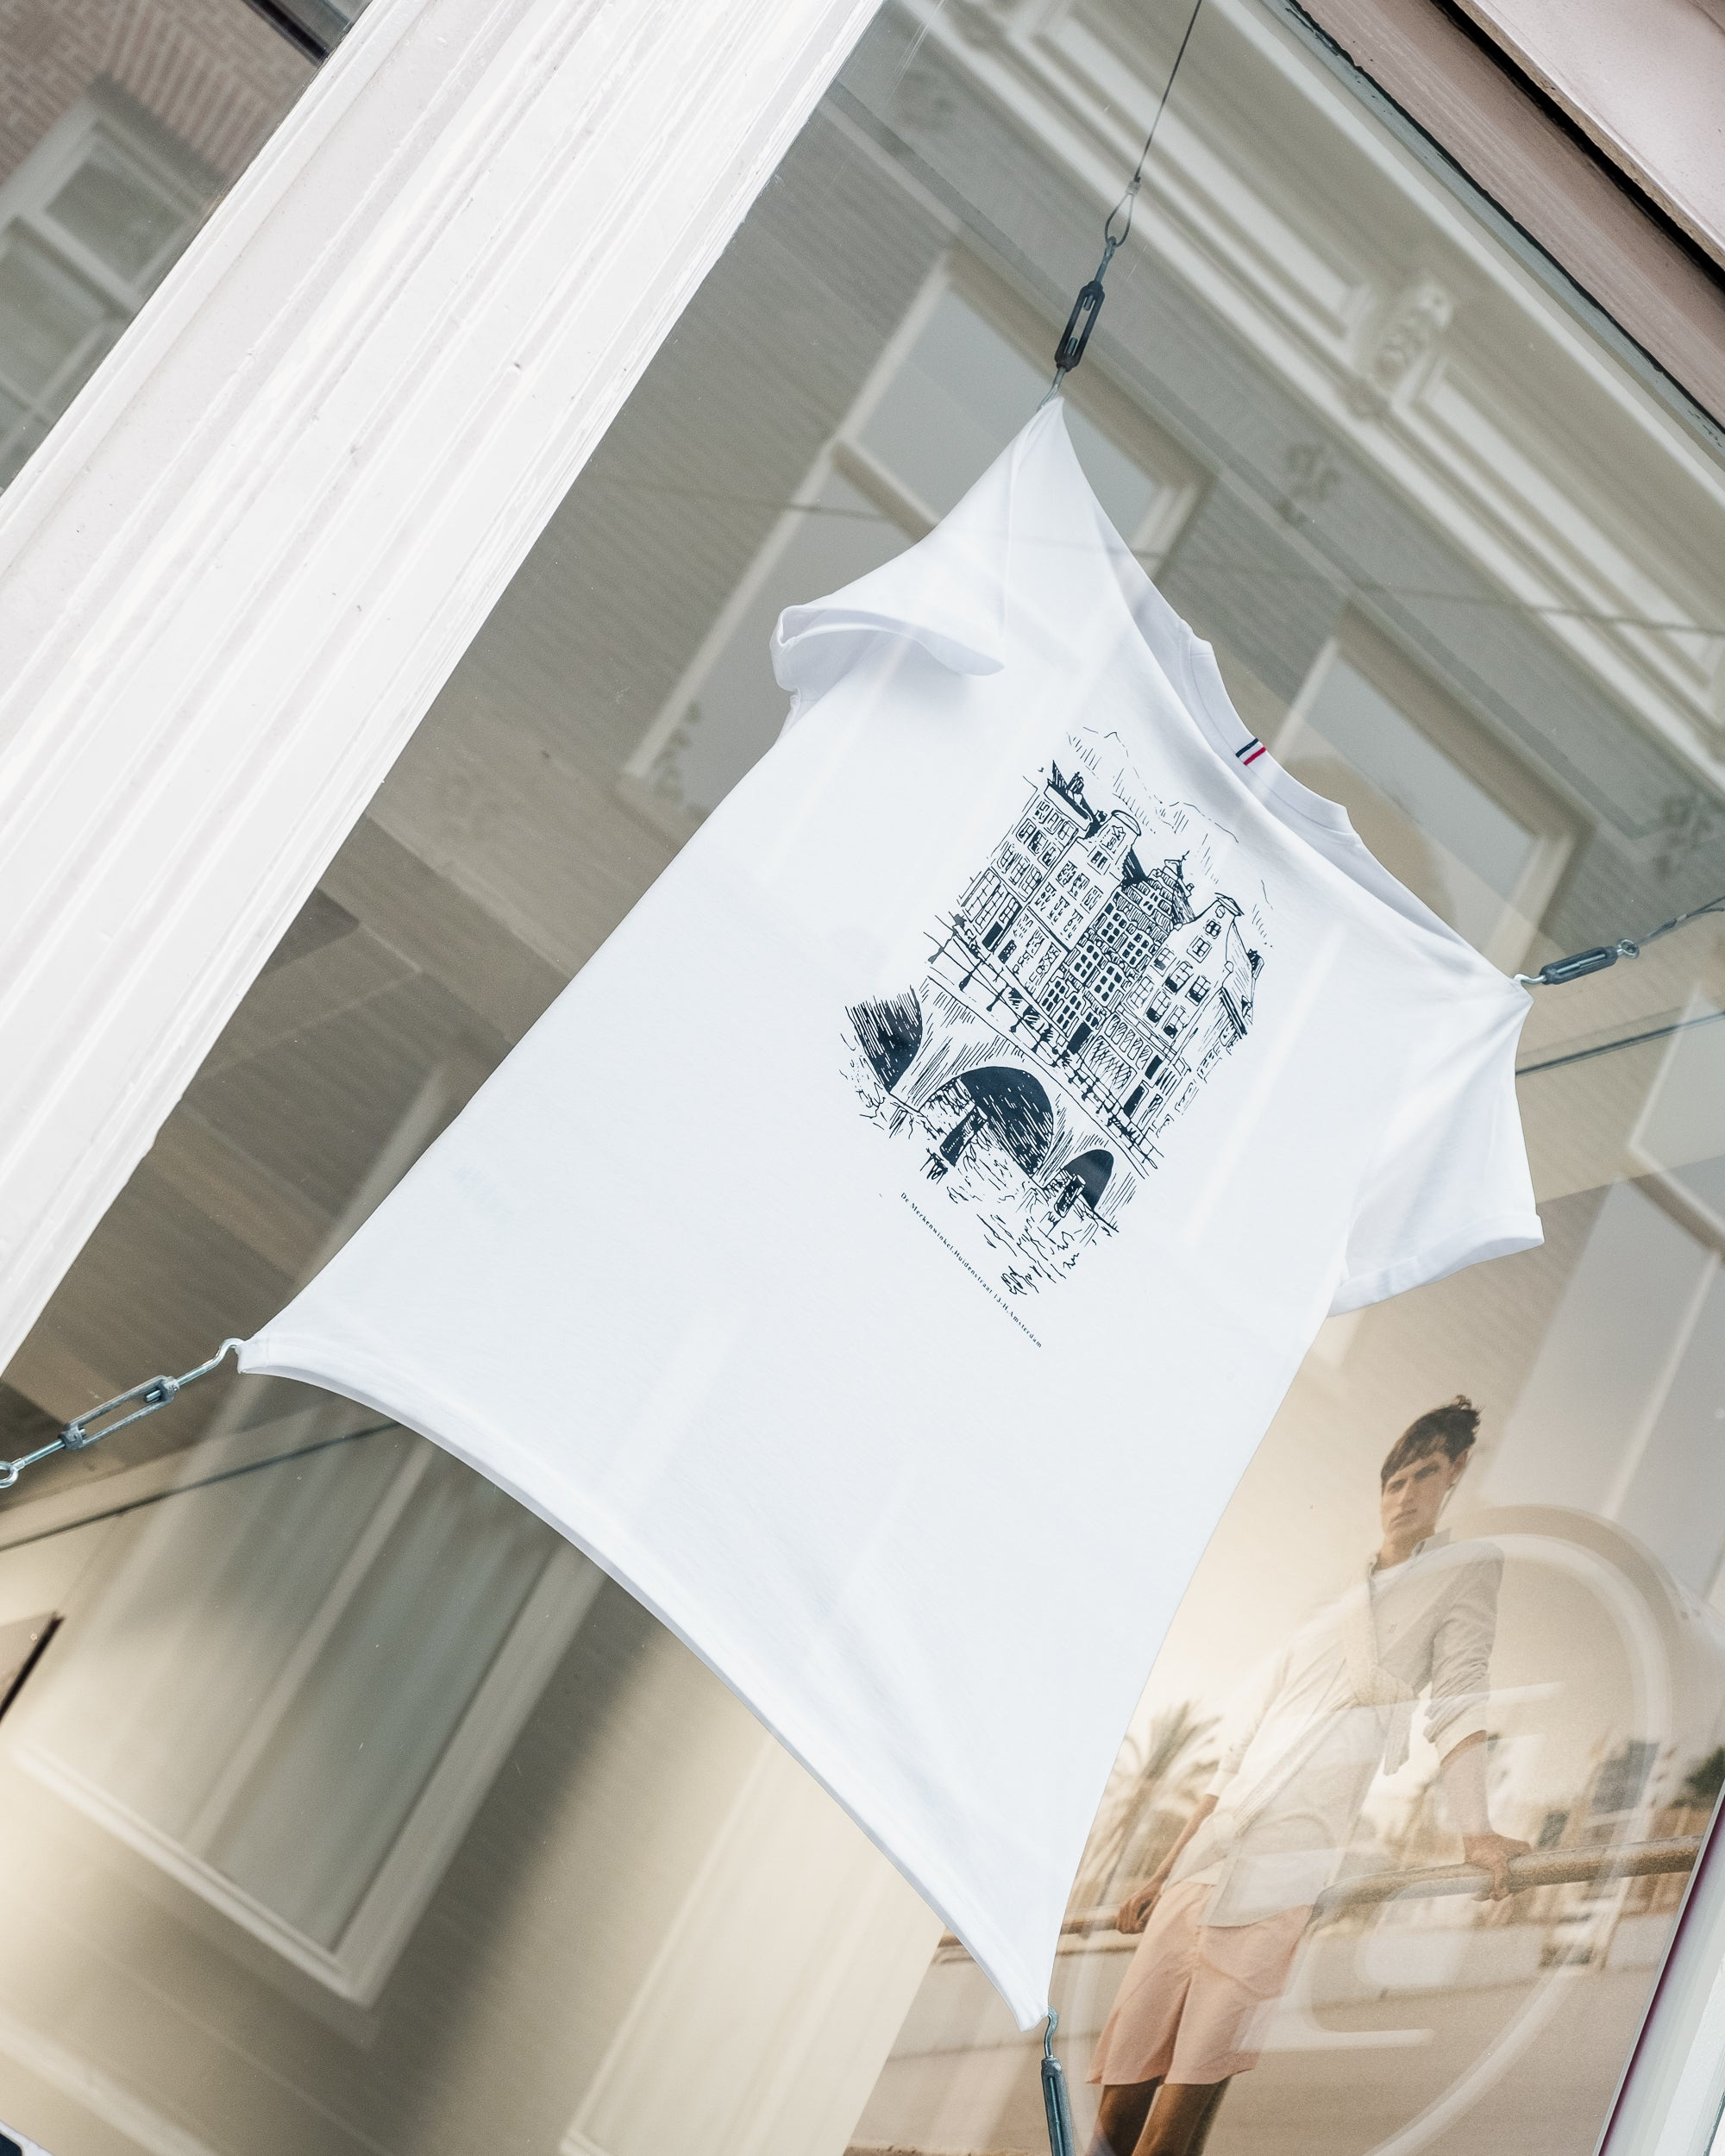 POP-UP: The Amsterdam Chapter